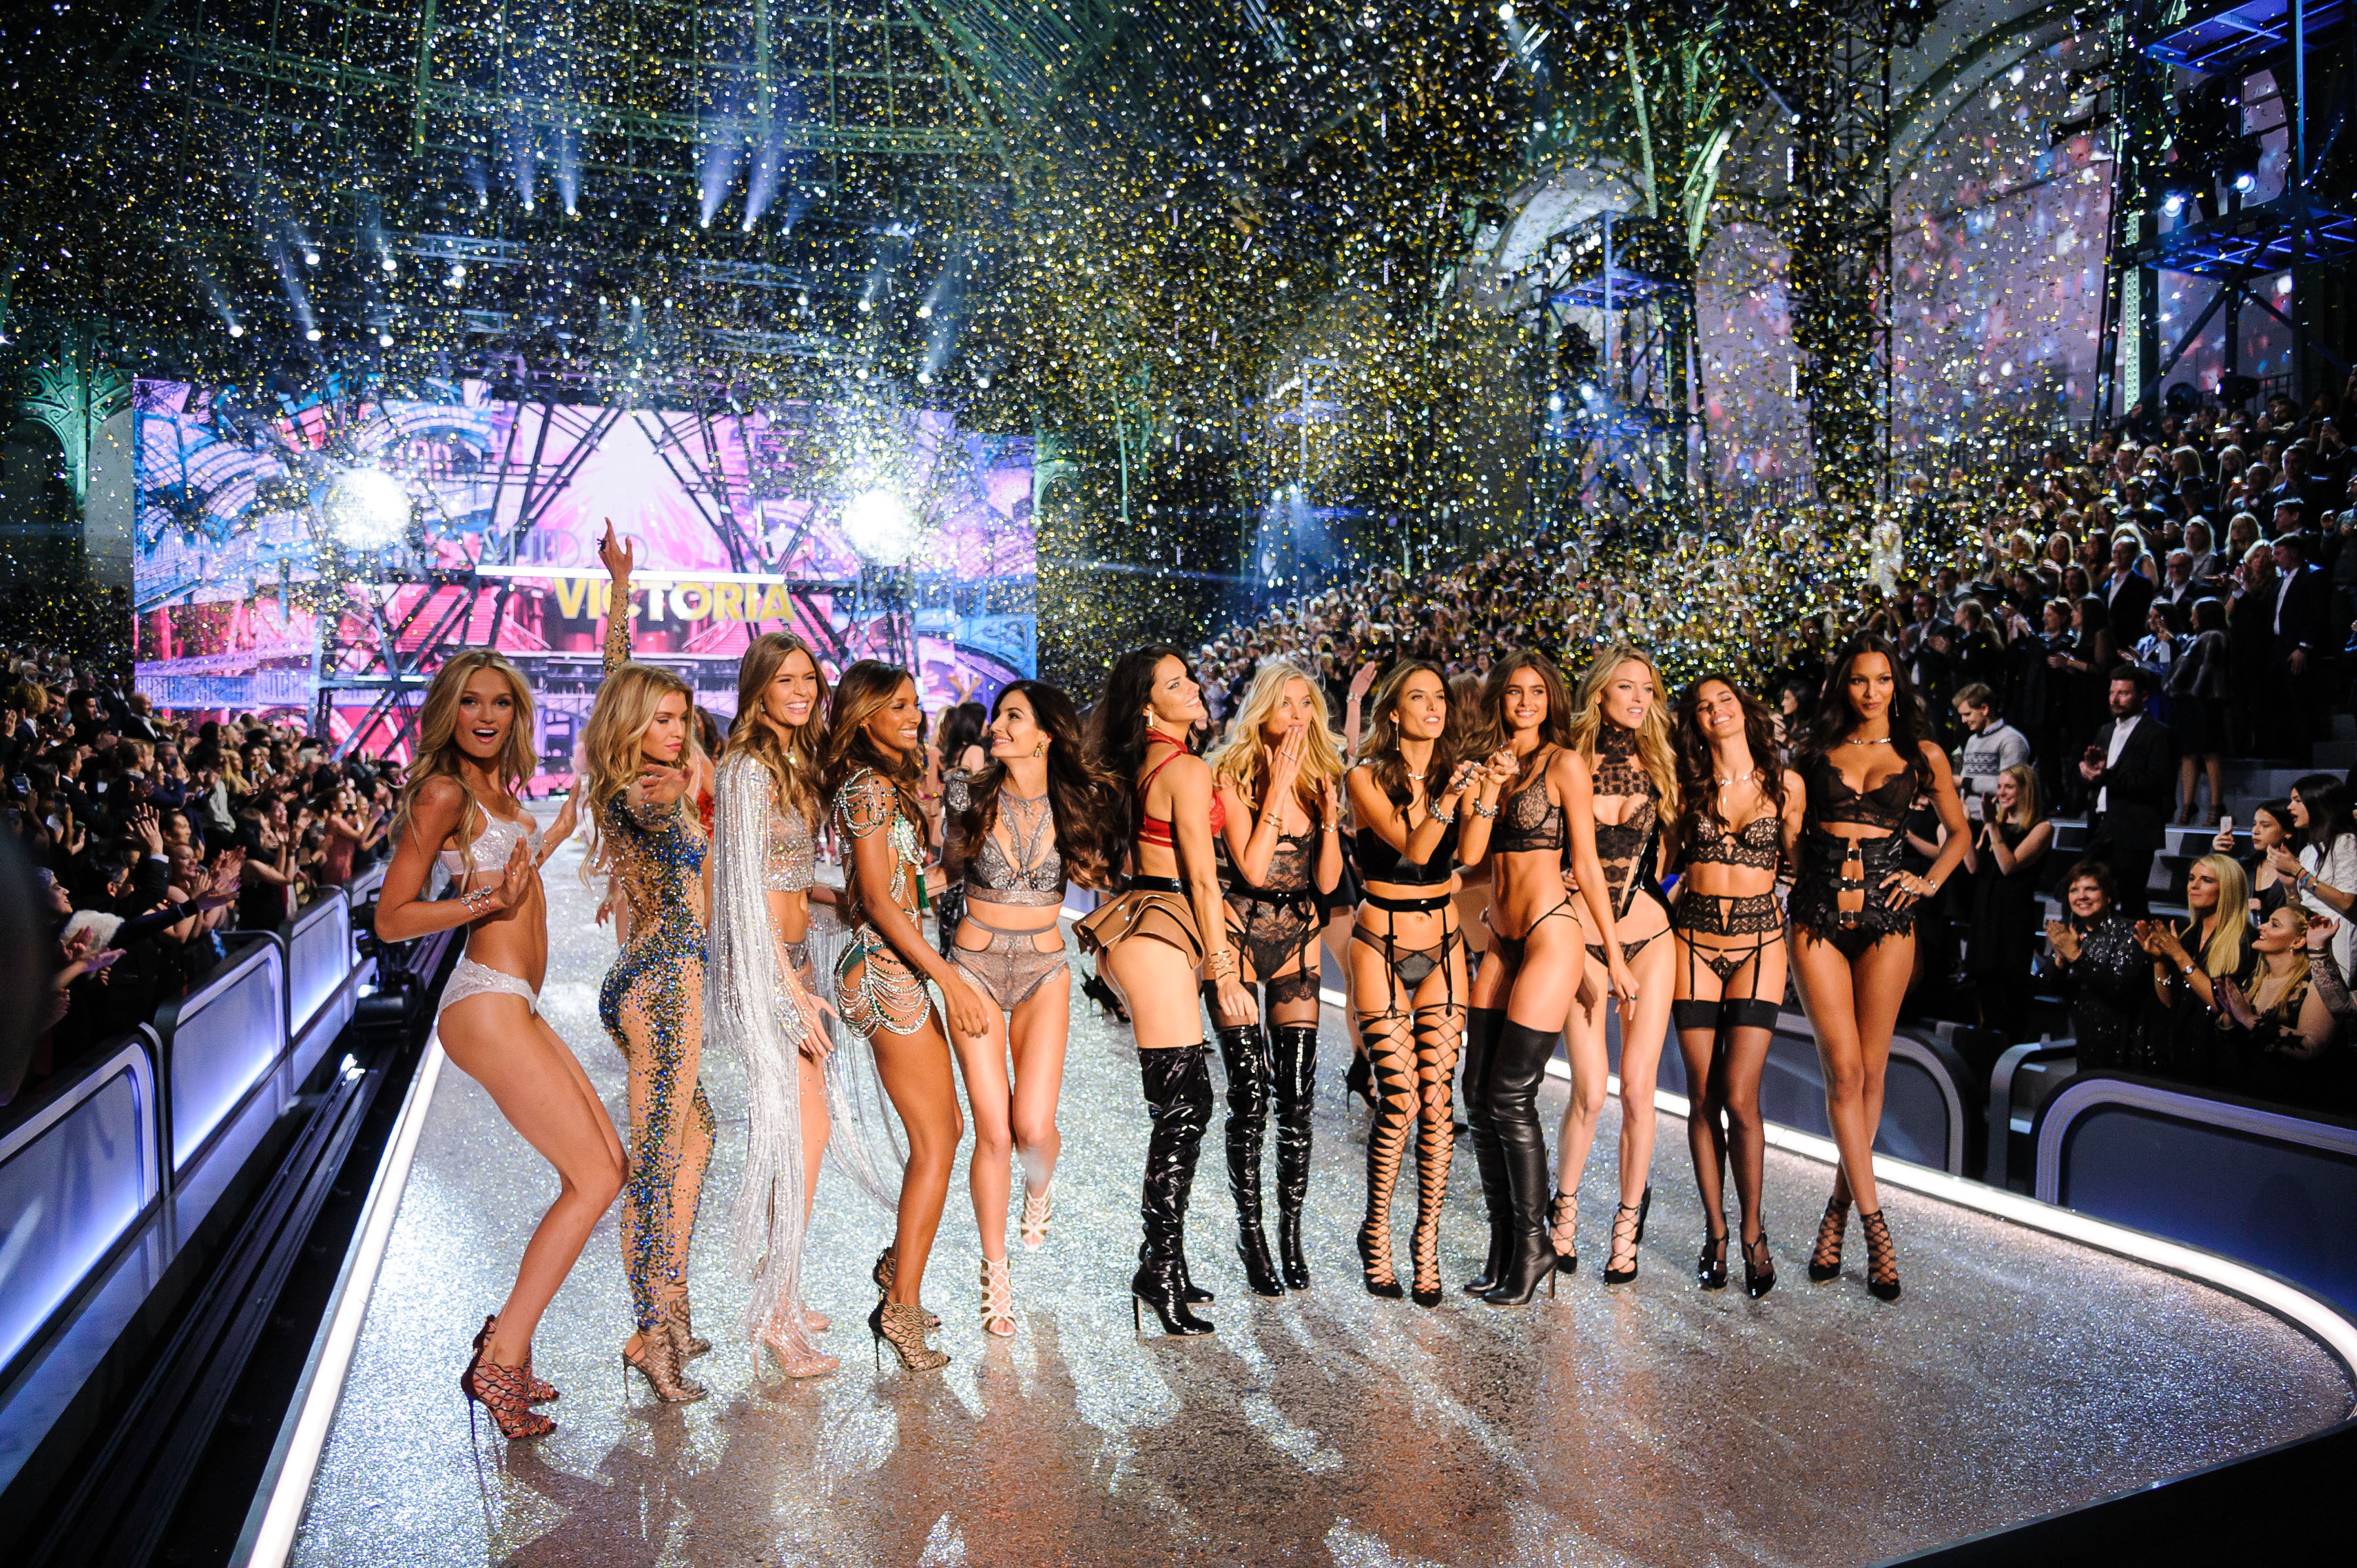 The Victoria's Secret Fashion Show Museum Is Perfect For People Who Want To Seem Cultured, But Mostly Just Care About Celebrities